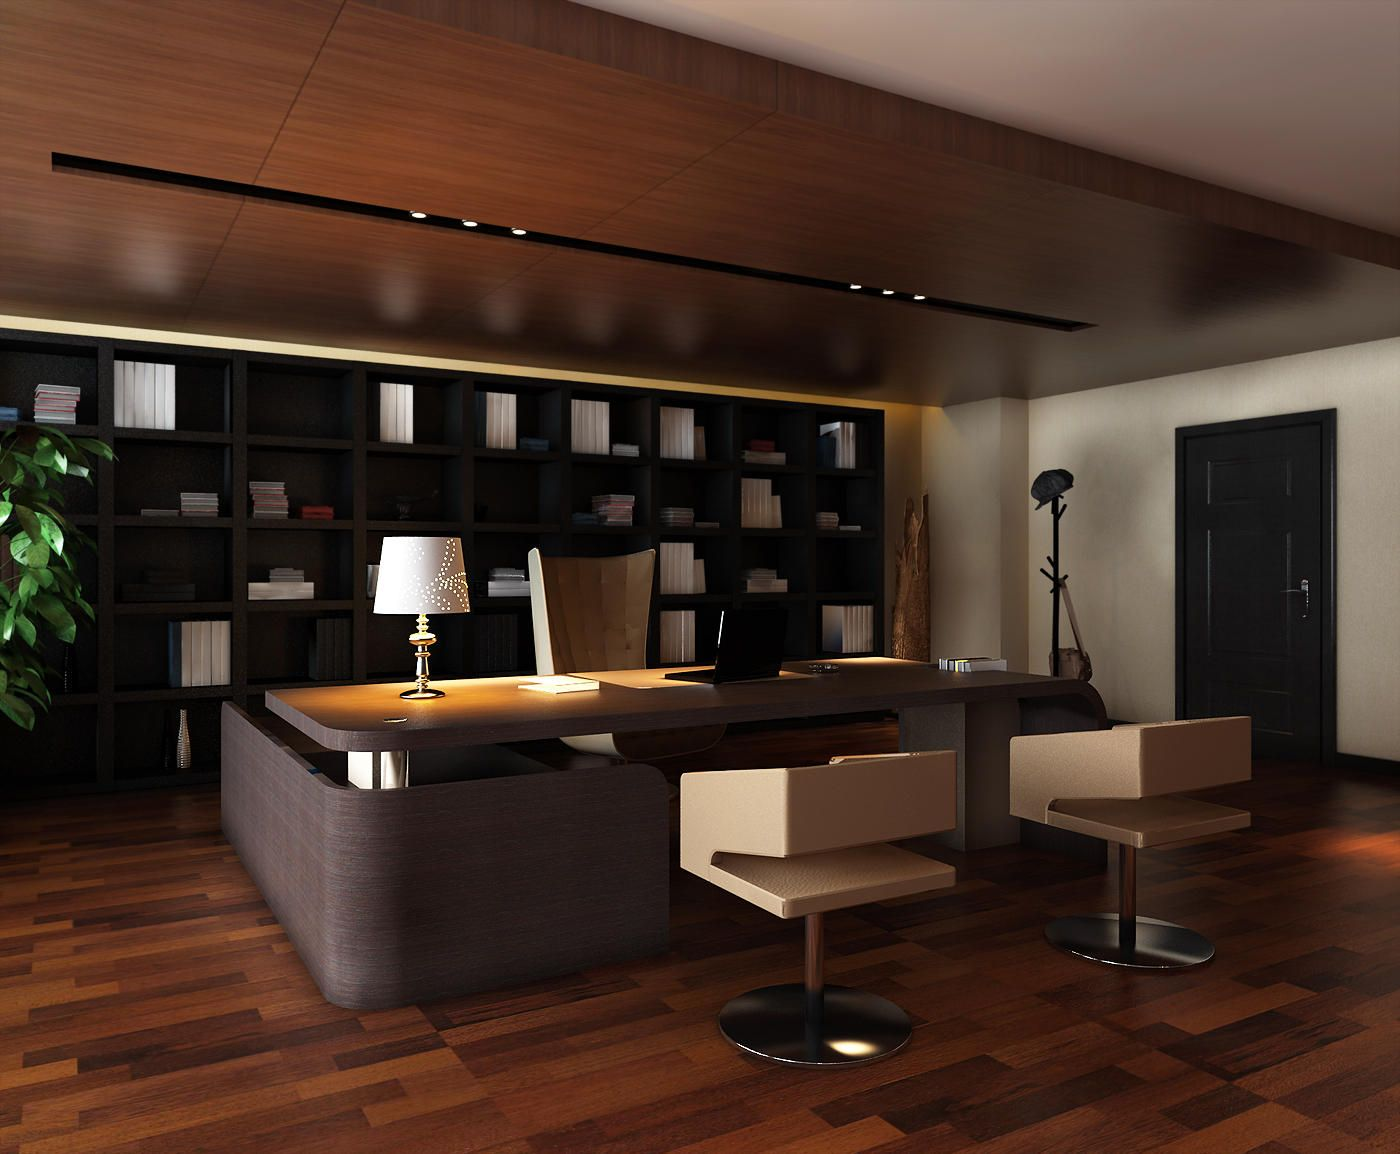 Alluring limitless executive office executive office for Interior designs for offices ideas